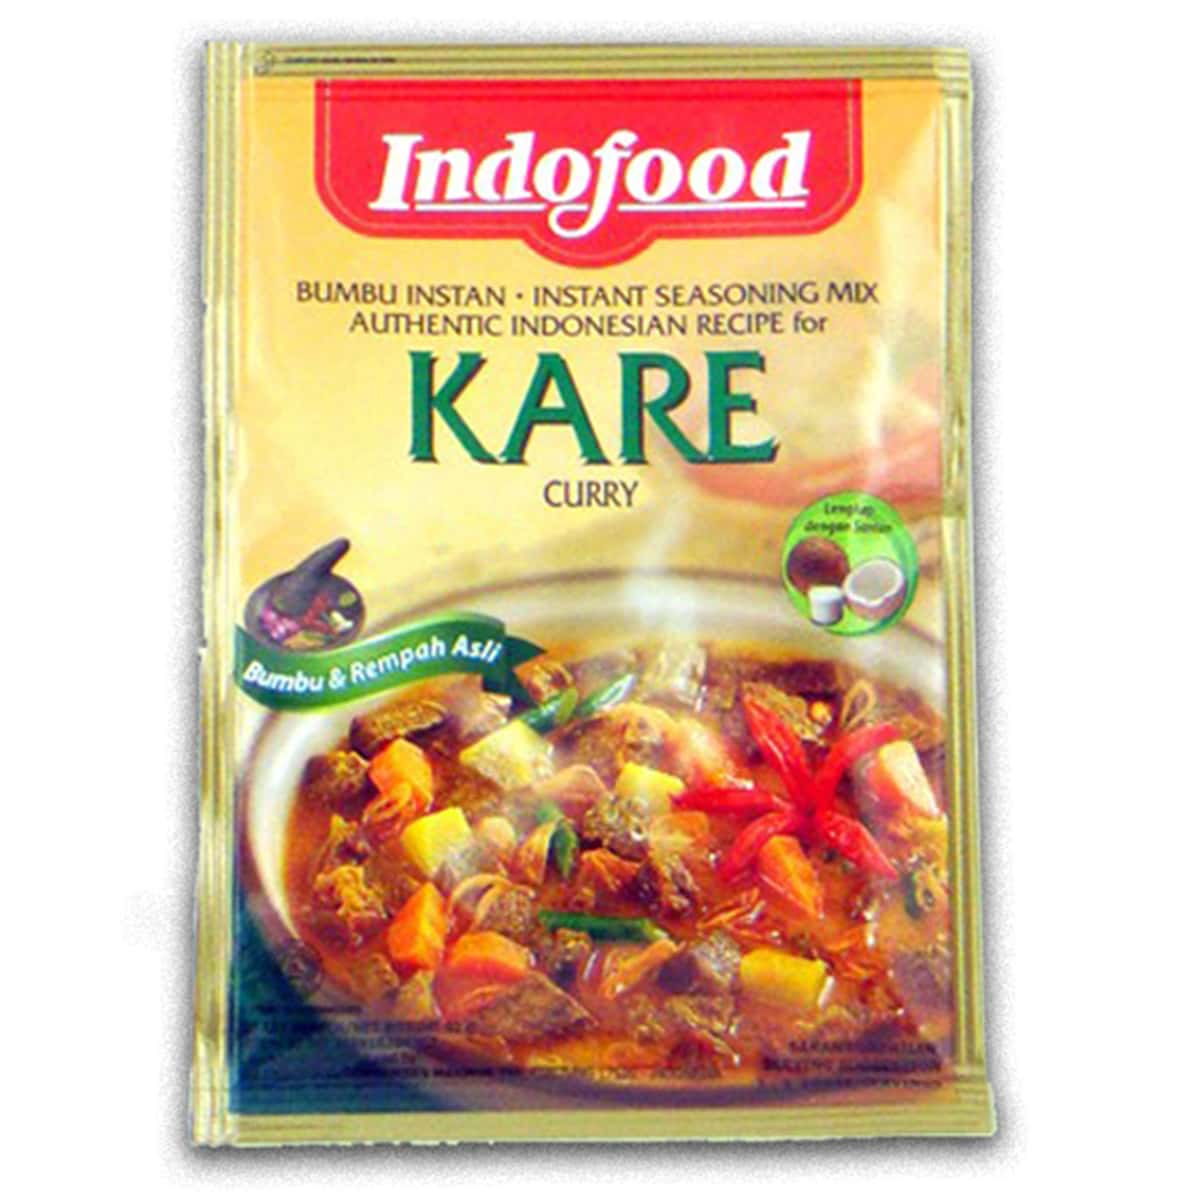 Buy Indofood Kare (Curry) - 45 gm